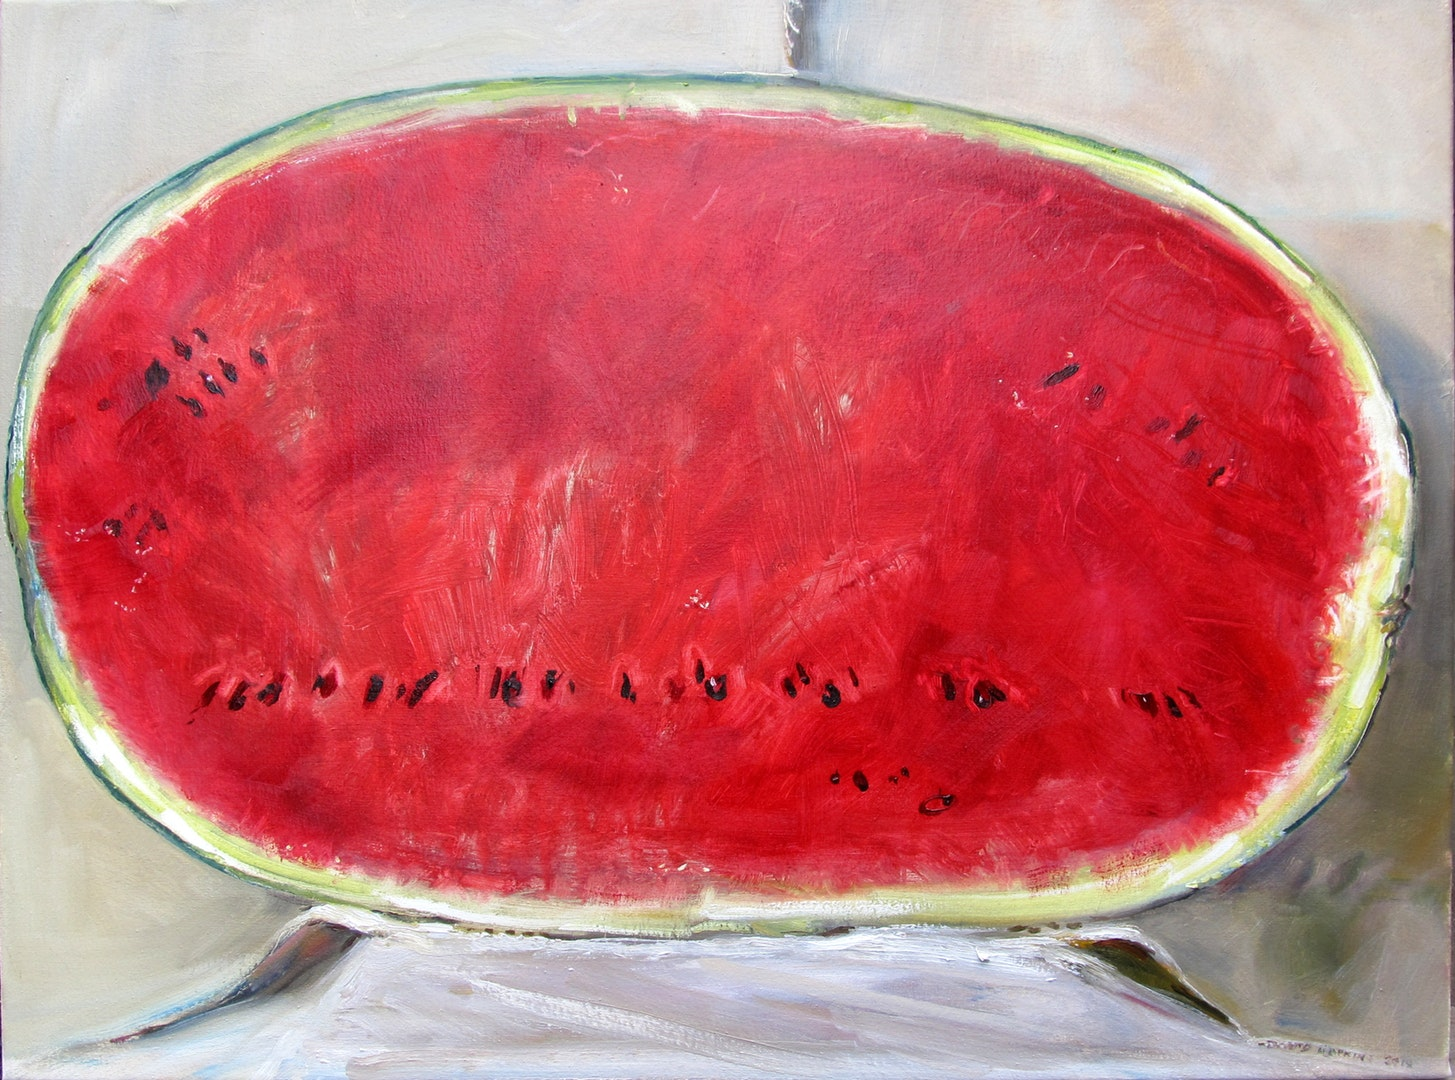 David Hopkins  Big Watermelon  Oil on canvas, 60.5 x 80 x 4 cm  http://www.davidhopkinspaintings.co.uk